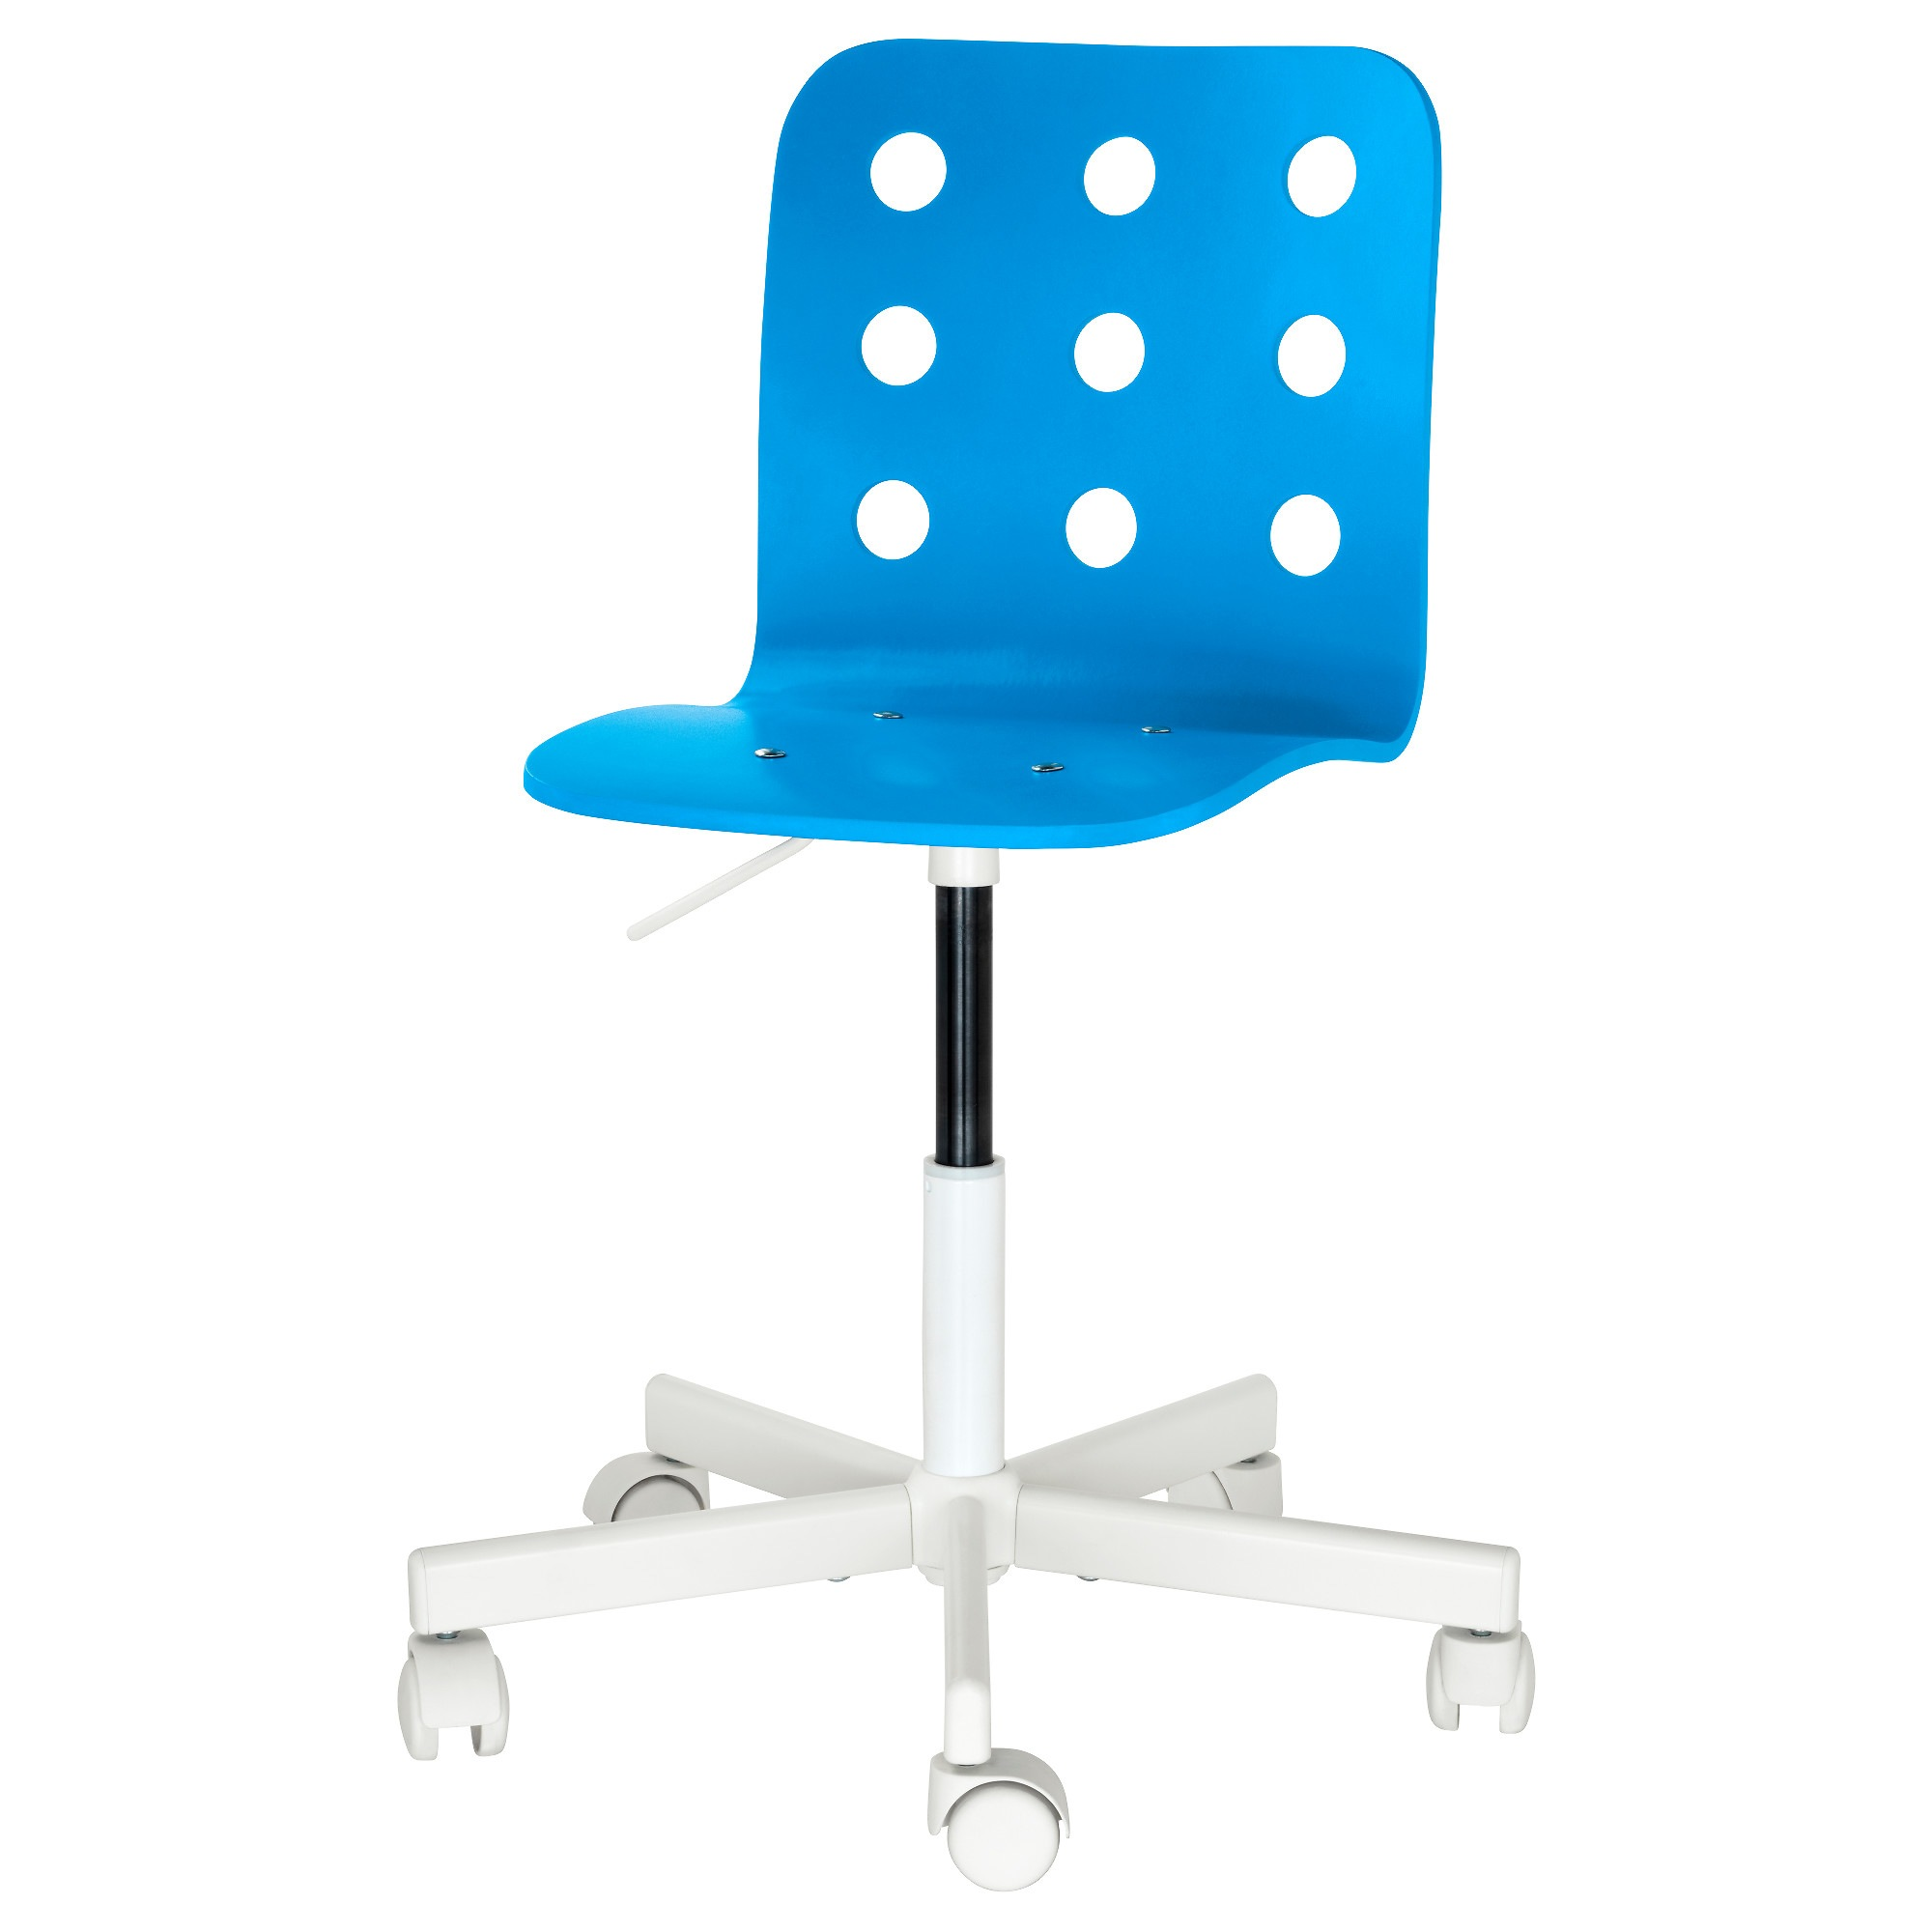 Astonishing Withdraw Jules Childrens Desk Chair Blue White Pink White Bralicious Painted Fabric Chair Ideas Braliciousco